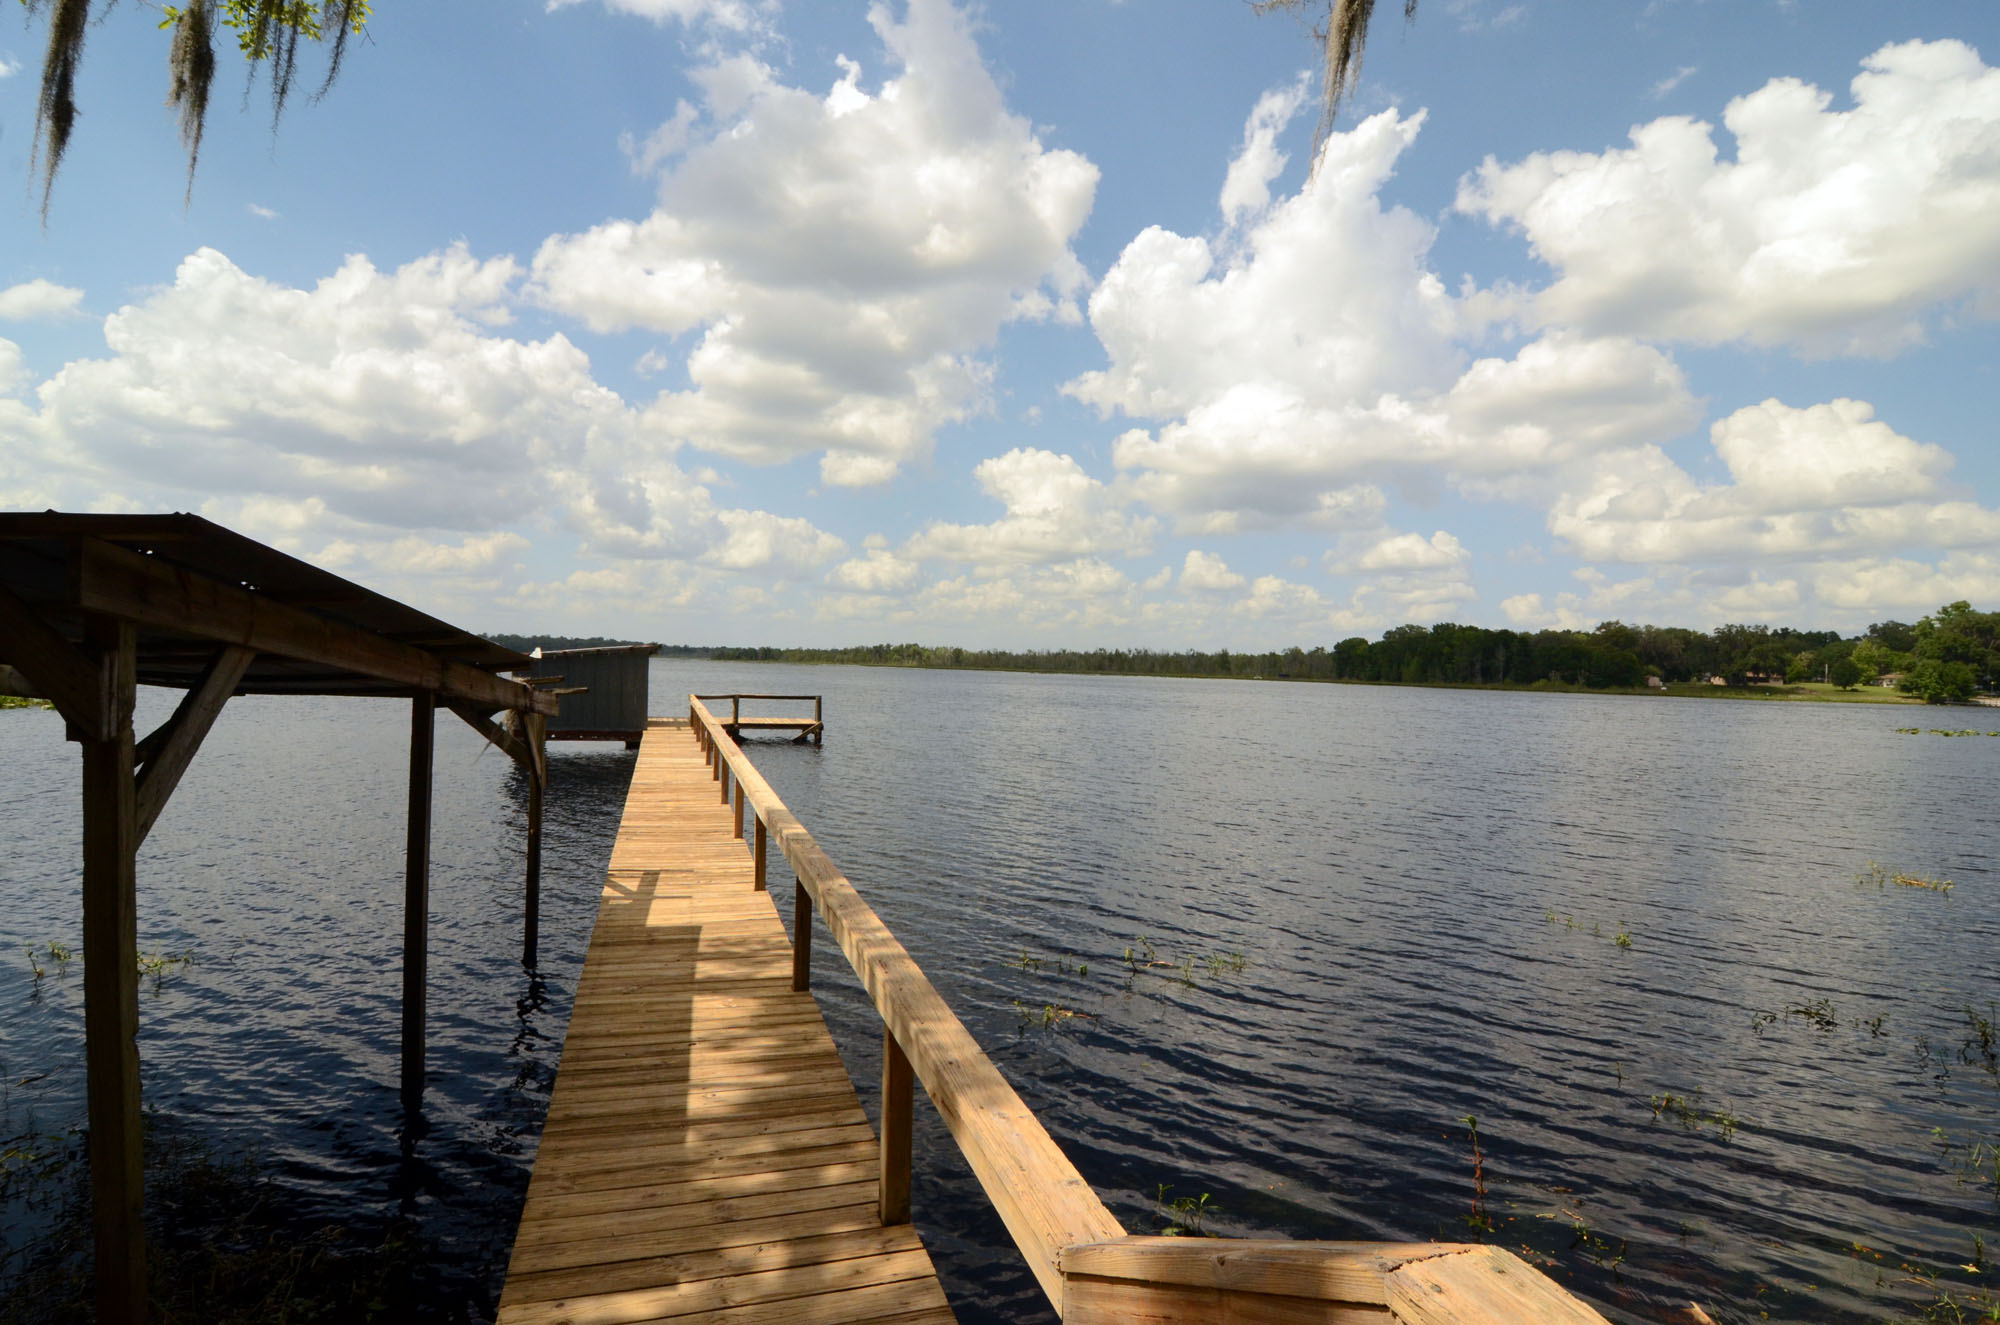 Sold: Lakefront Home 25 min from Gainesville